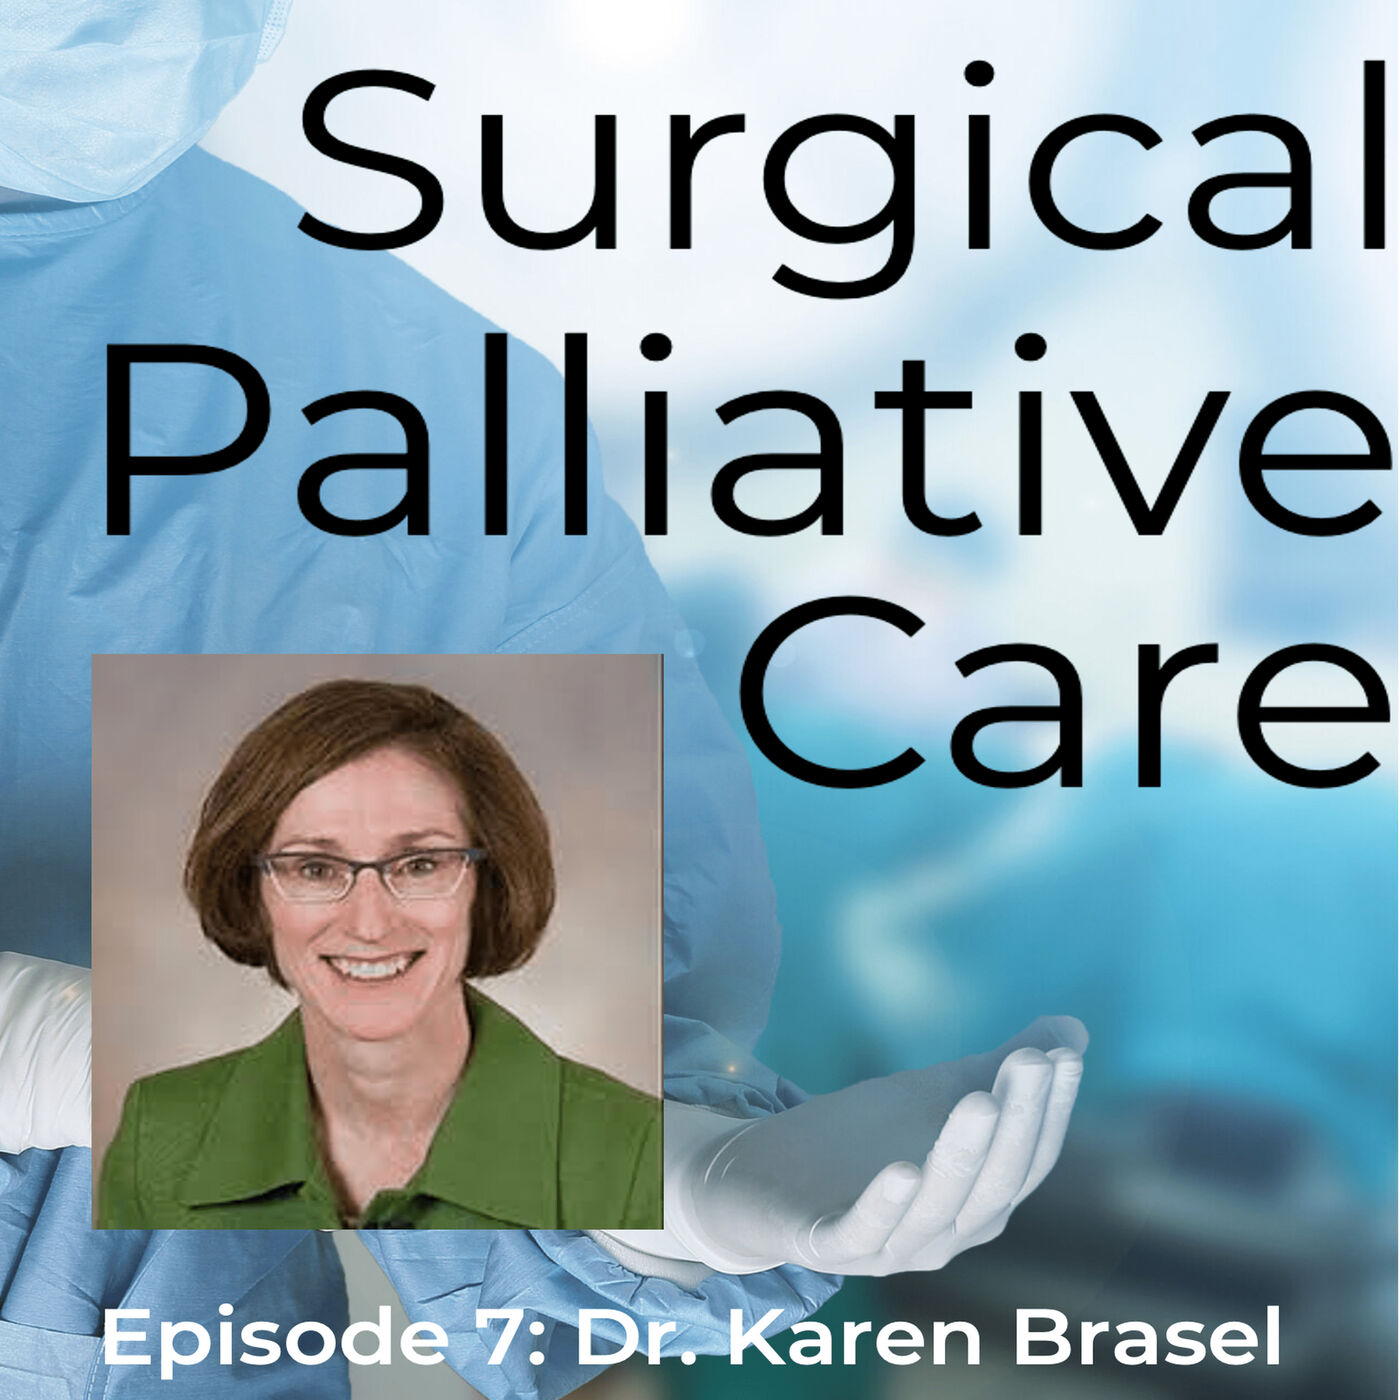 Dr. Karen Brasel: Surgical Palliative Care Educator